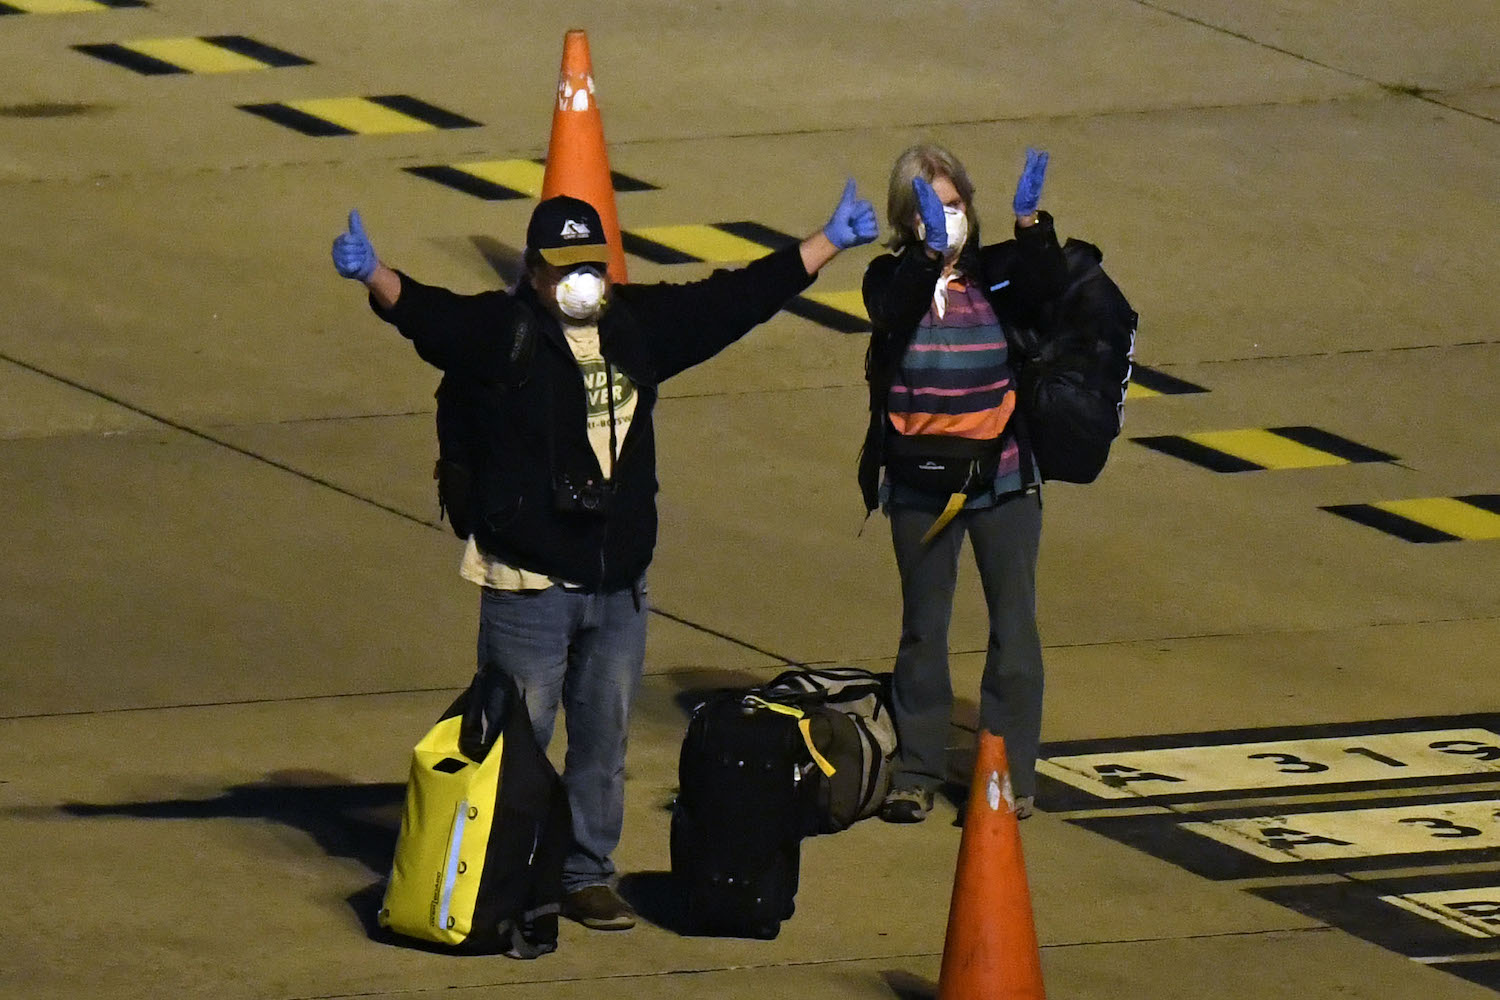 Two Covid-19-free passengers evacuated from the coronavirus-stricken Australian liner Greg Mortimer wave before boarding a plane that will fly Australian and New Zealander passengers to Melbourne, at Carrasco International Airport in Montevideo, Uruguay. (AFP Photo)